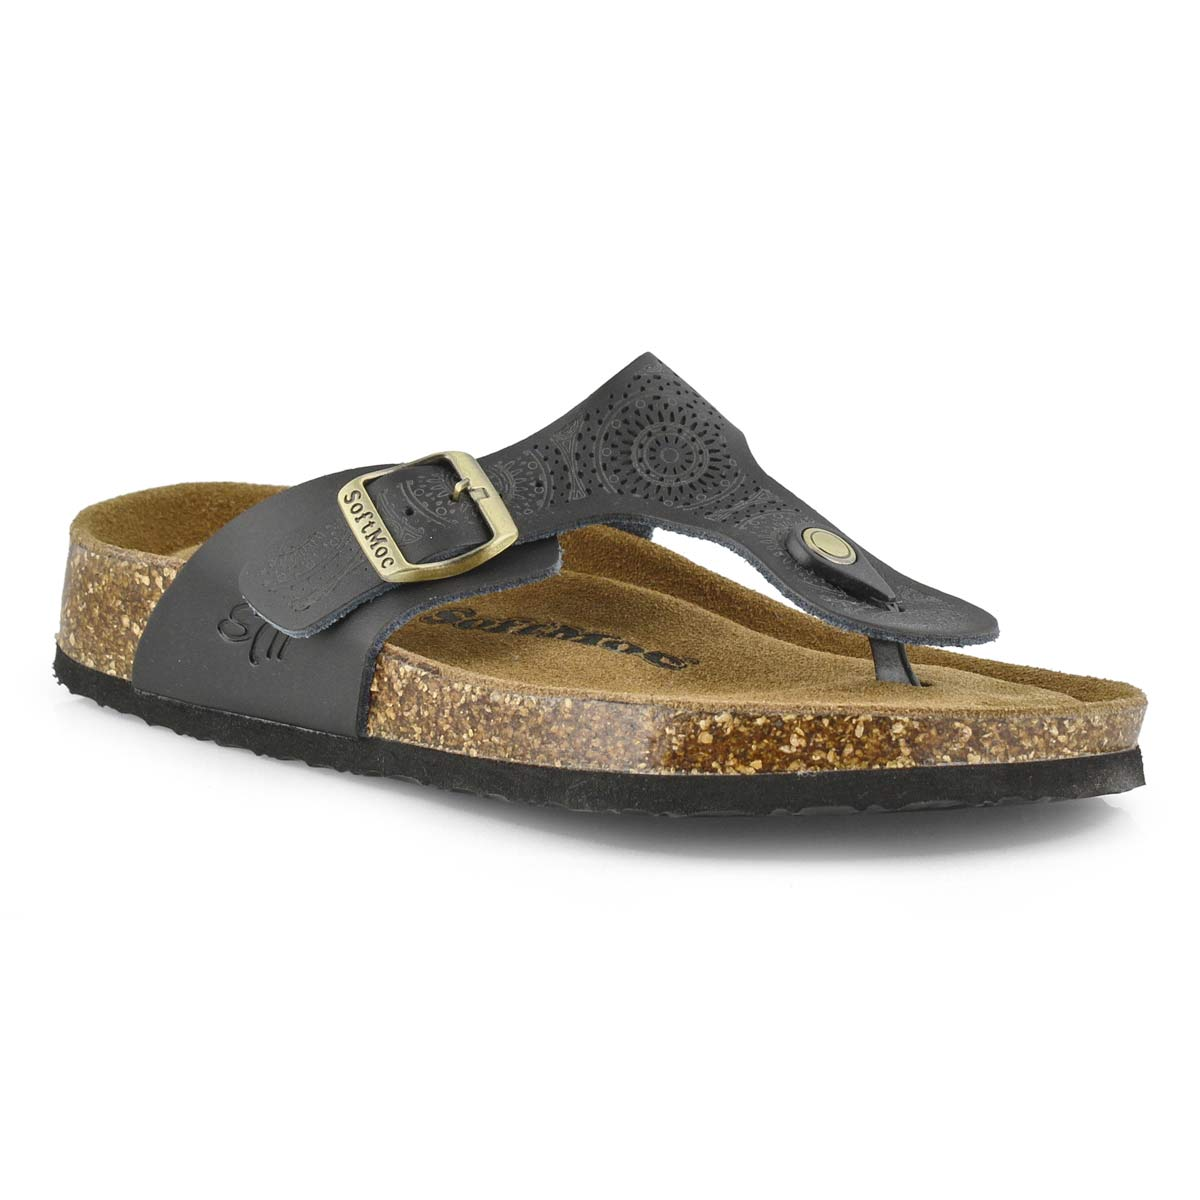 Women's ANGY 5 blk perf memory foam thong sandals